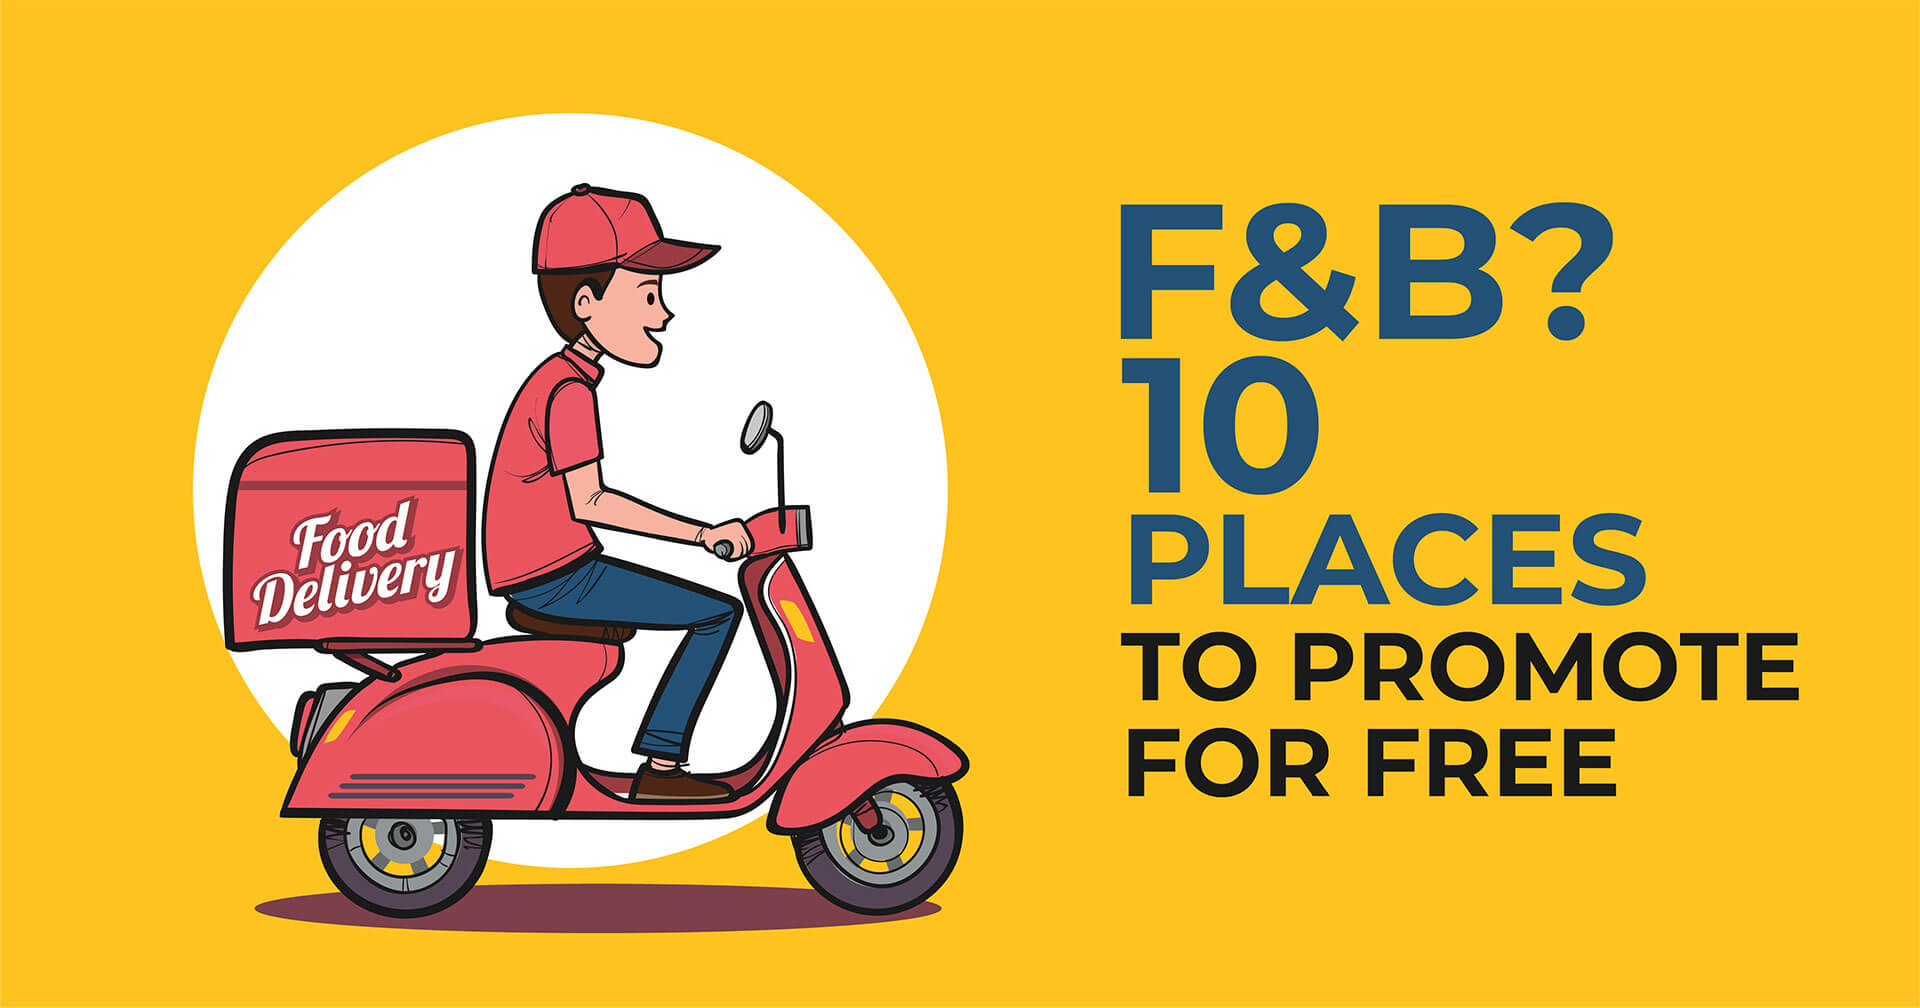 10 Free Platforms to Promote Your F&B Business 🍴